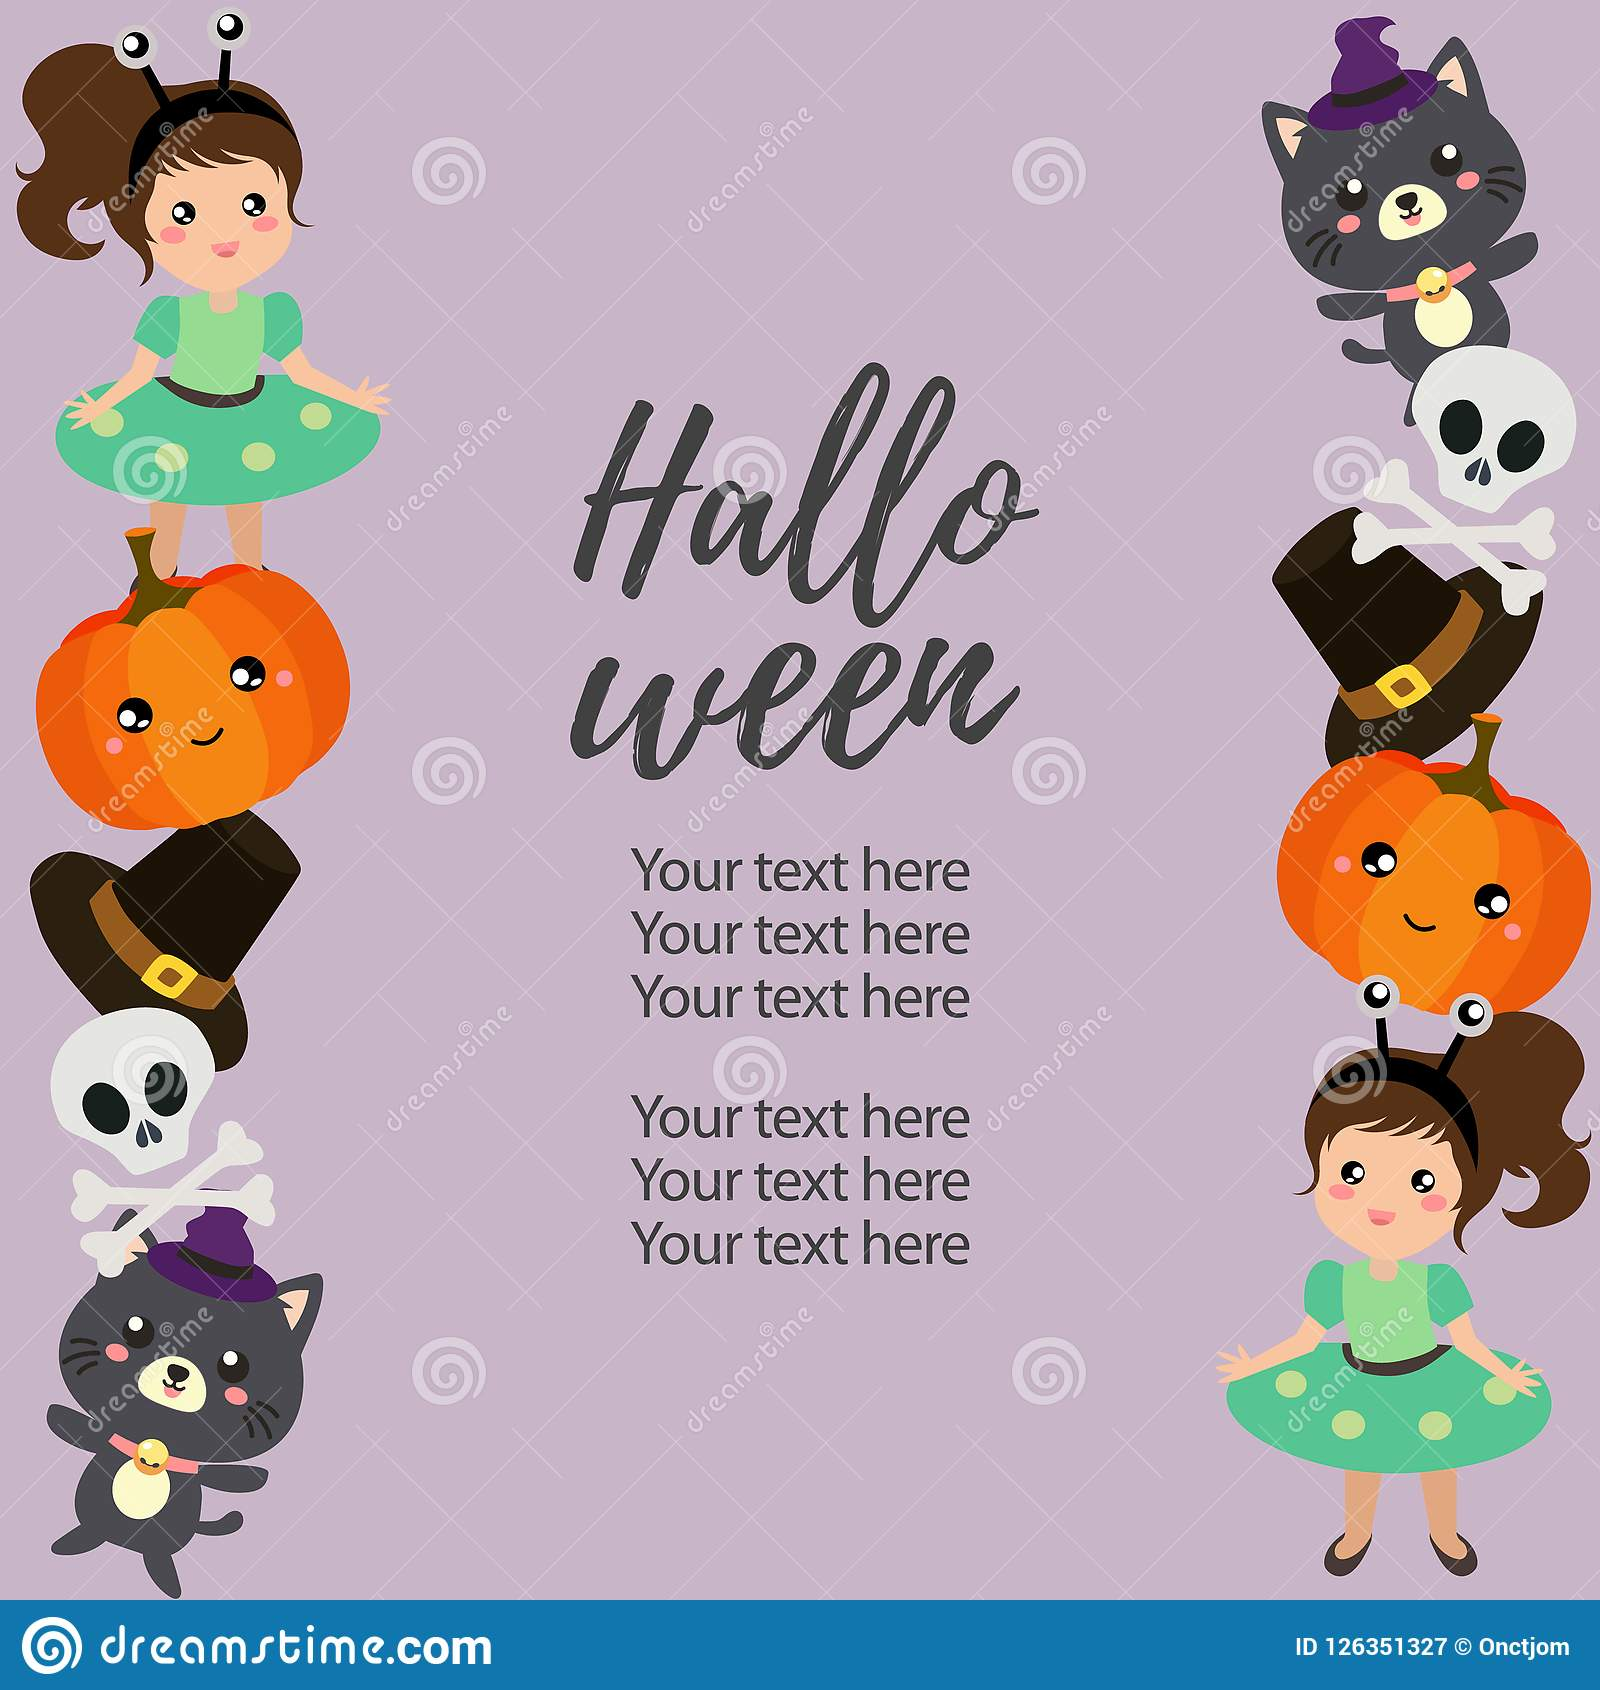 Cute Halloween Vertical Border Template With Alien Costume Stock